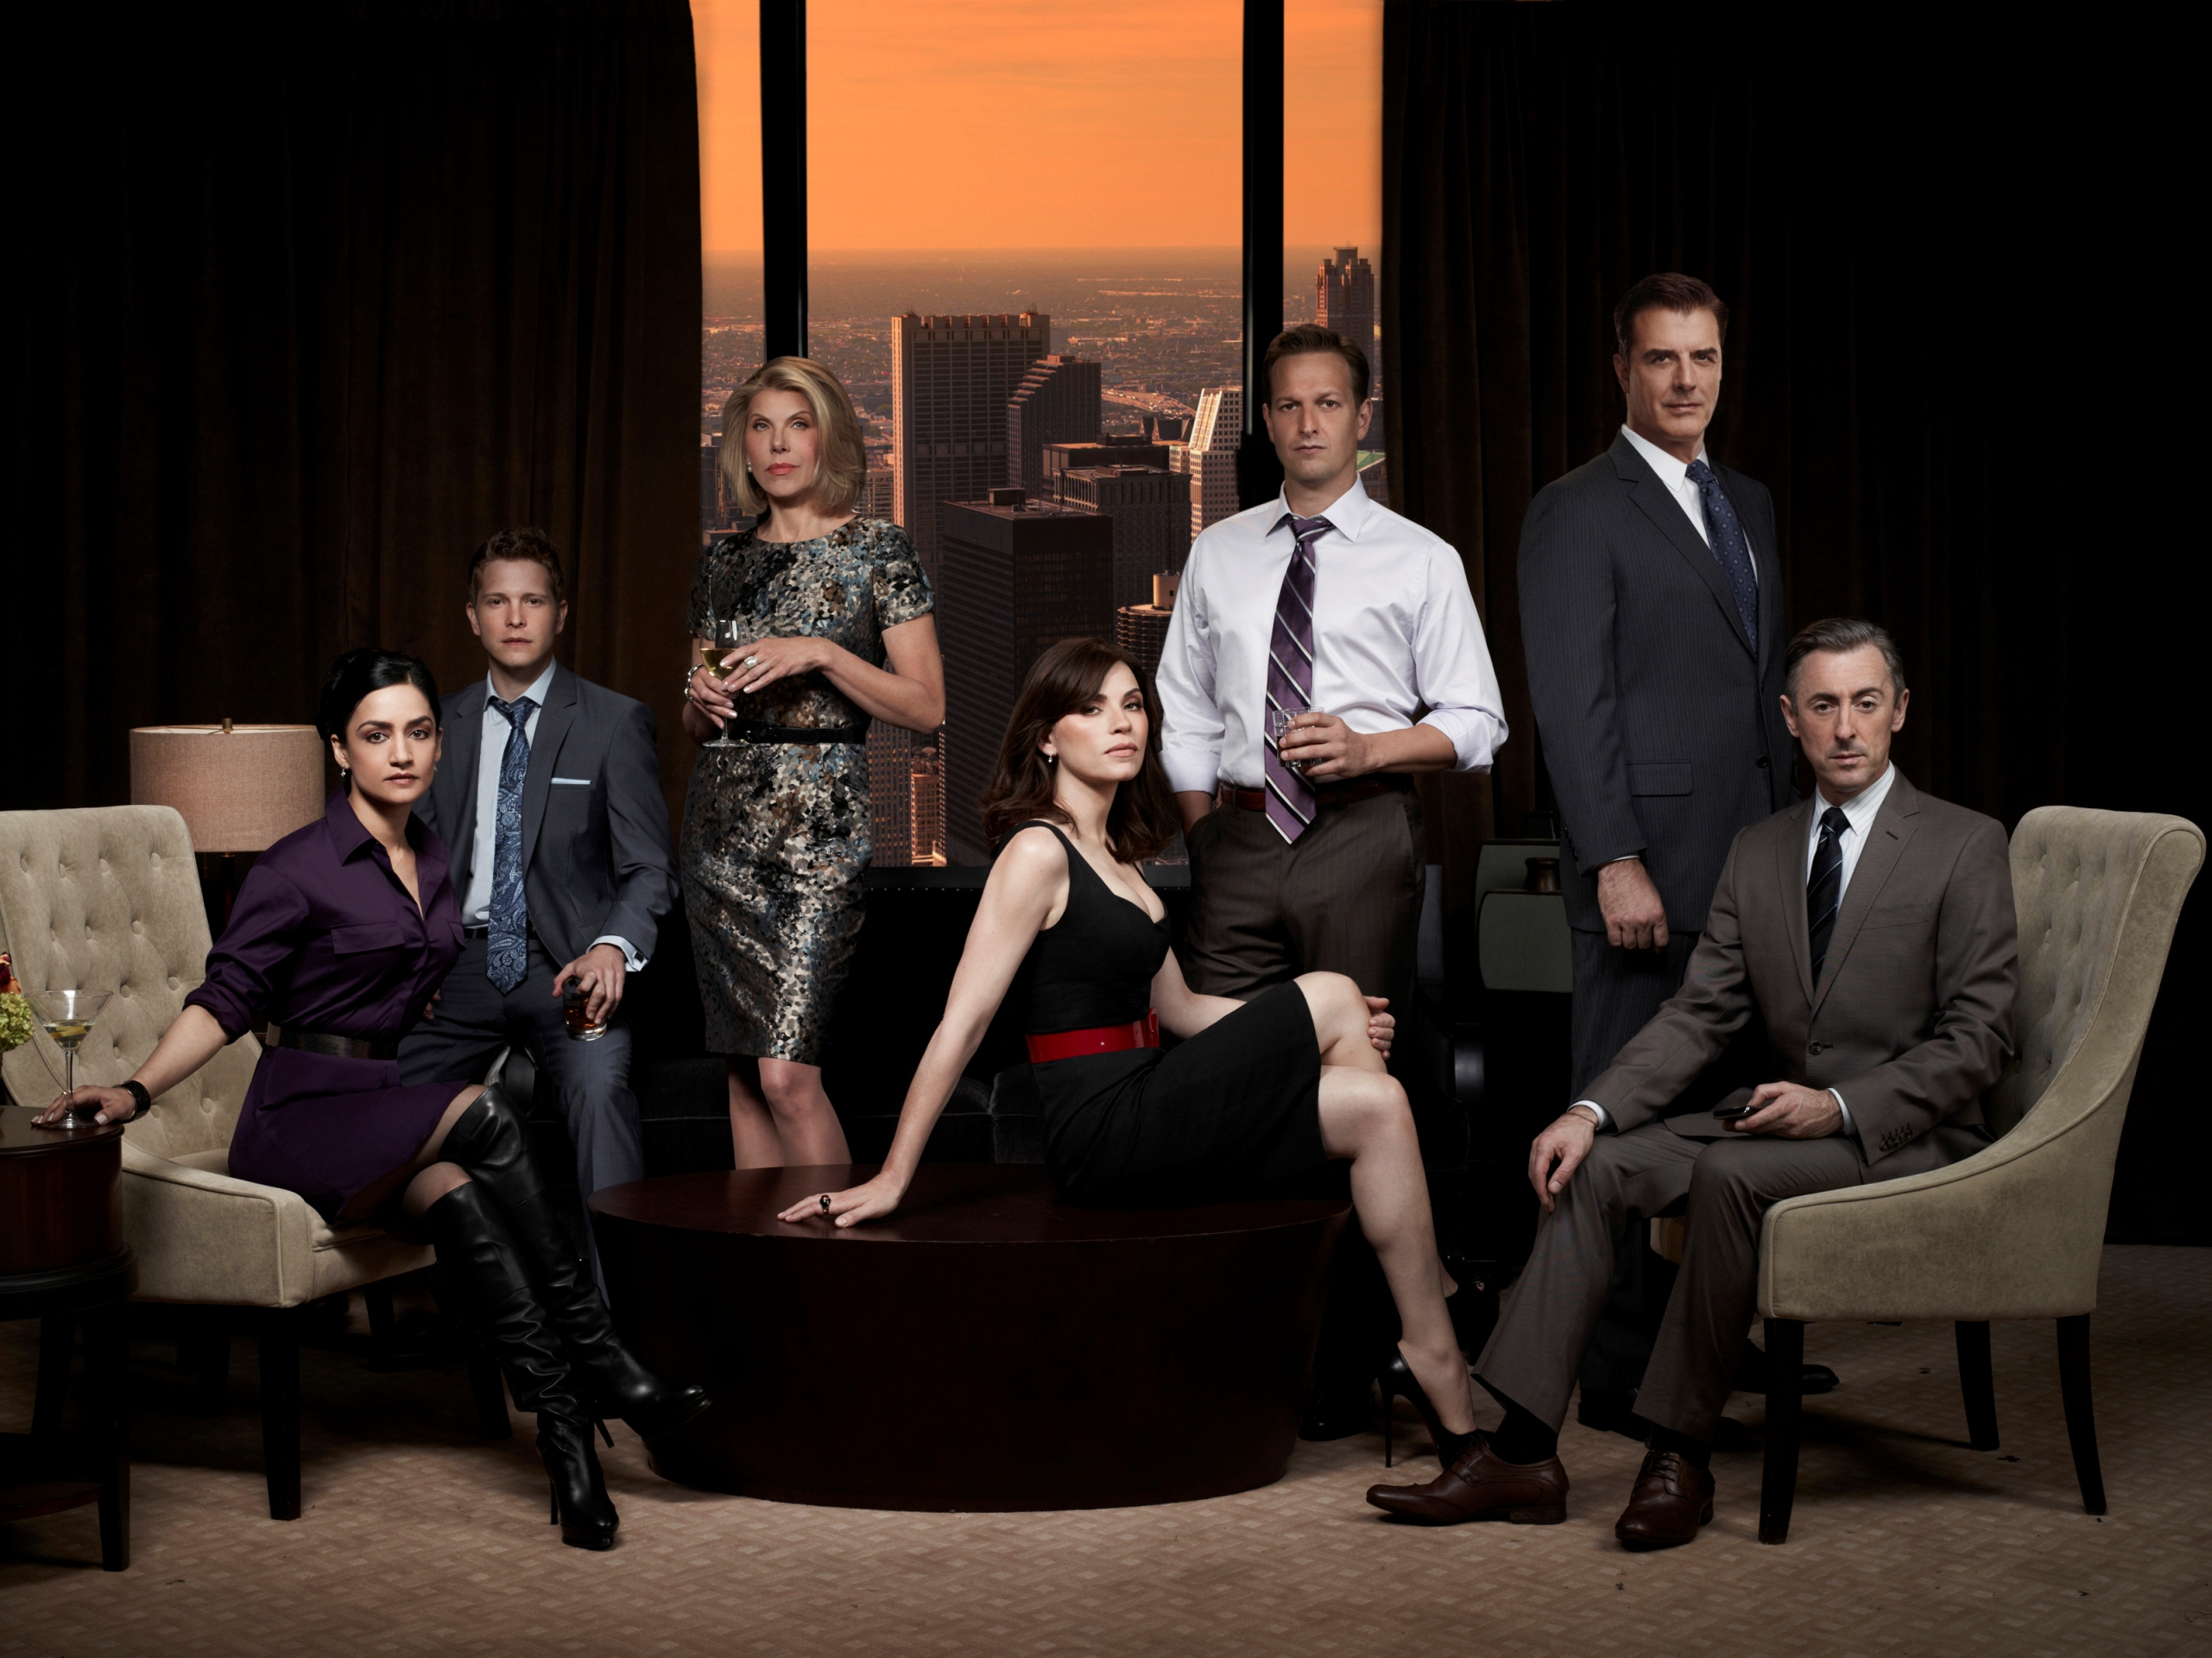 Why The Good Wife is still a great show?